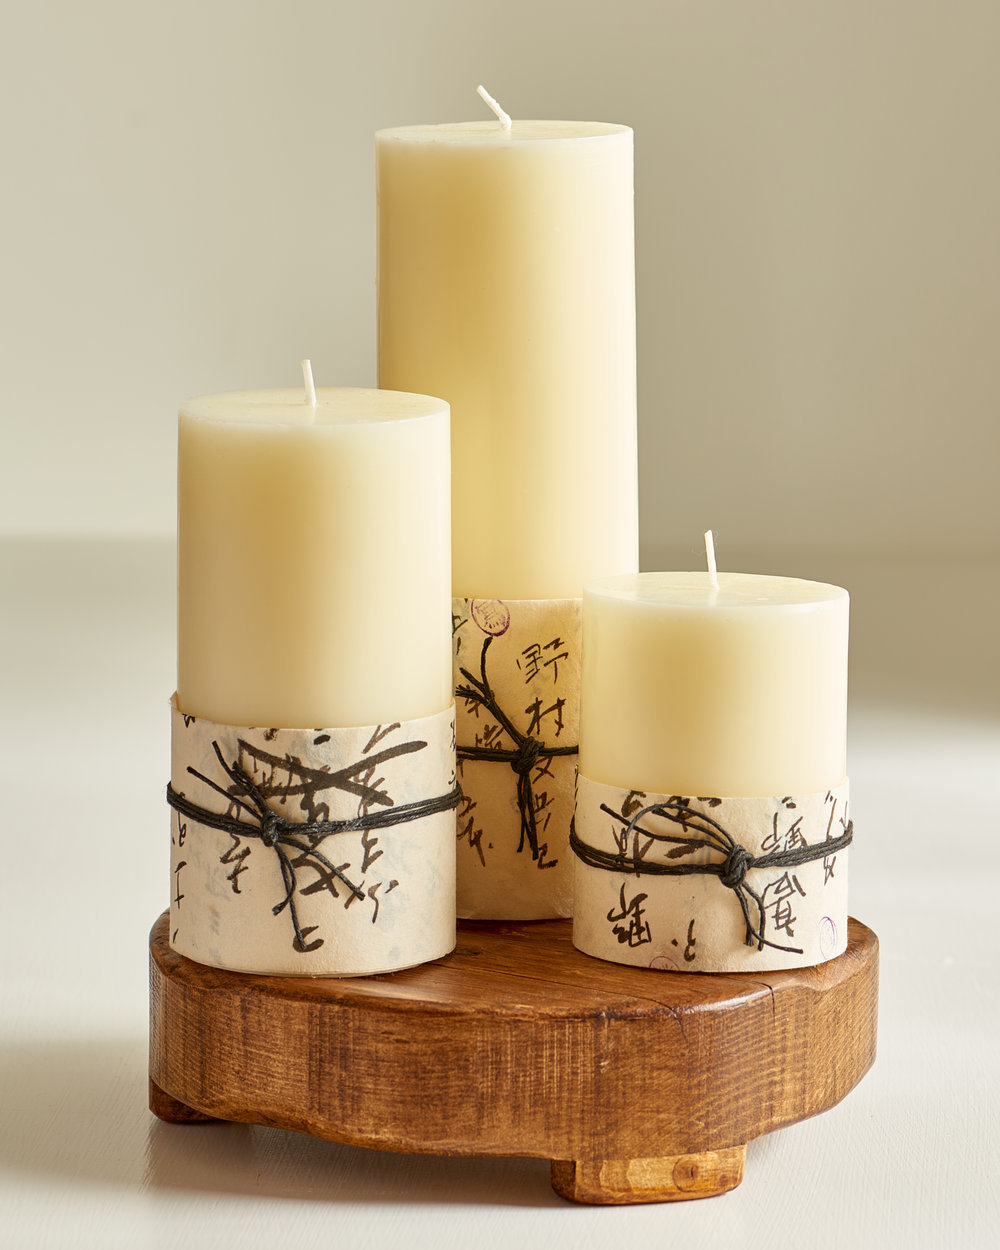 Ivory pillar candles wrapped in antique Chinese paper, from $9